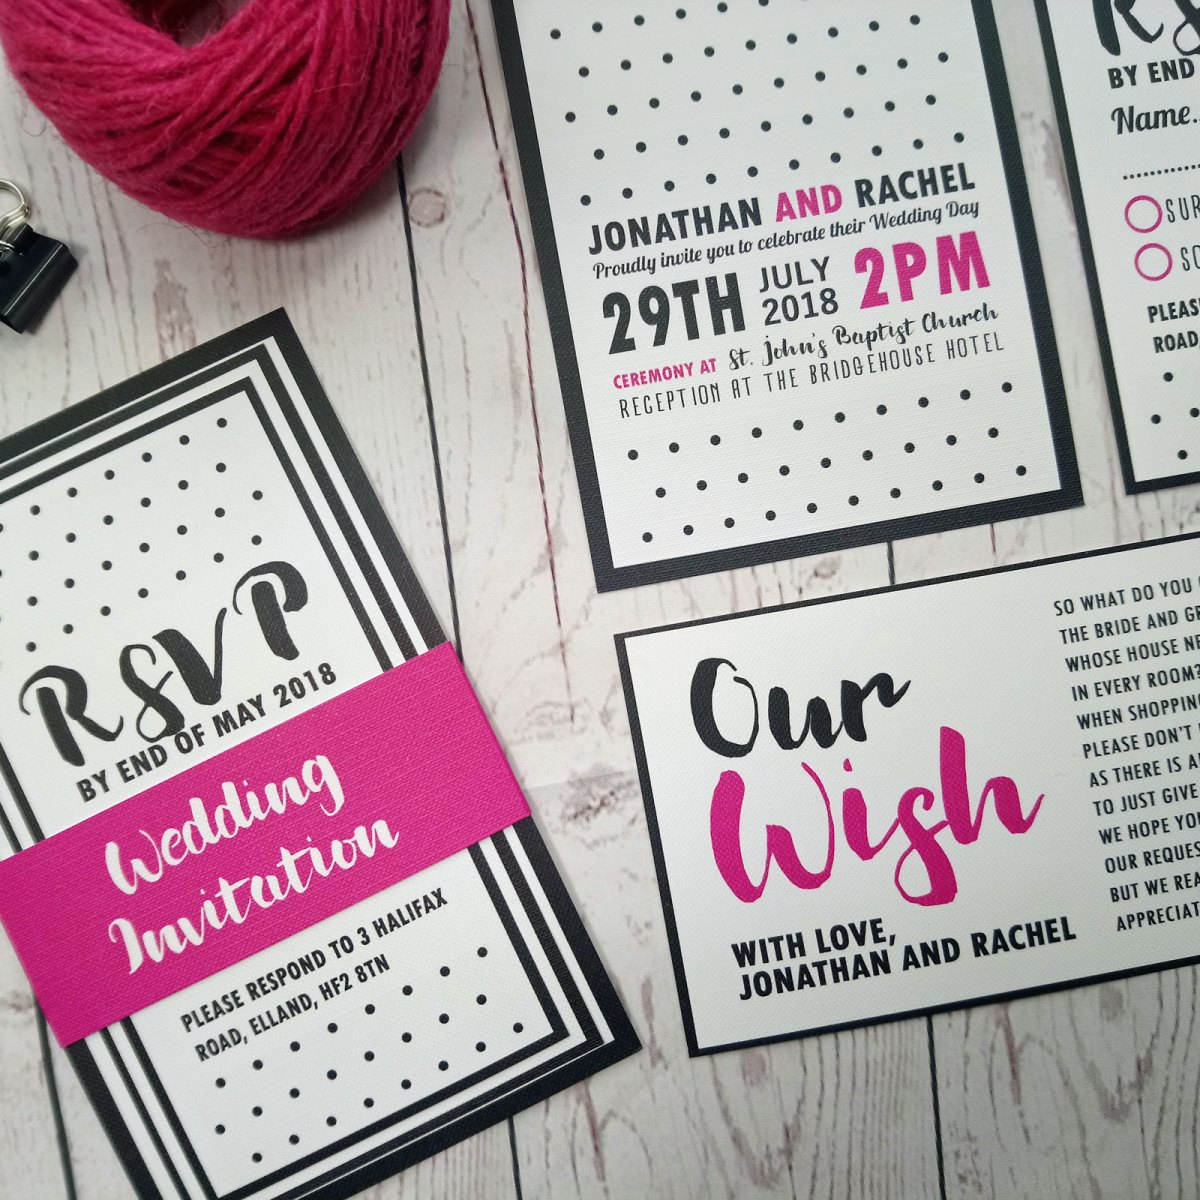 Polka Dot Wedding Invitation Full Set with Pink Banner. Set contains main invite, RSVP card and Honeymoon Wish Poem